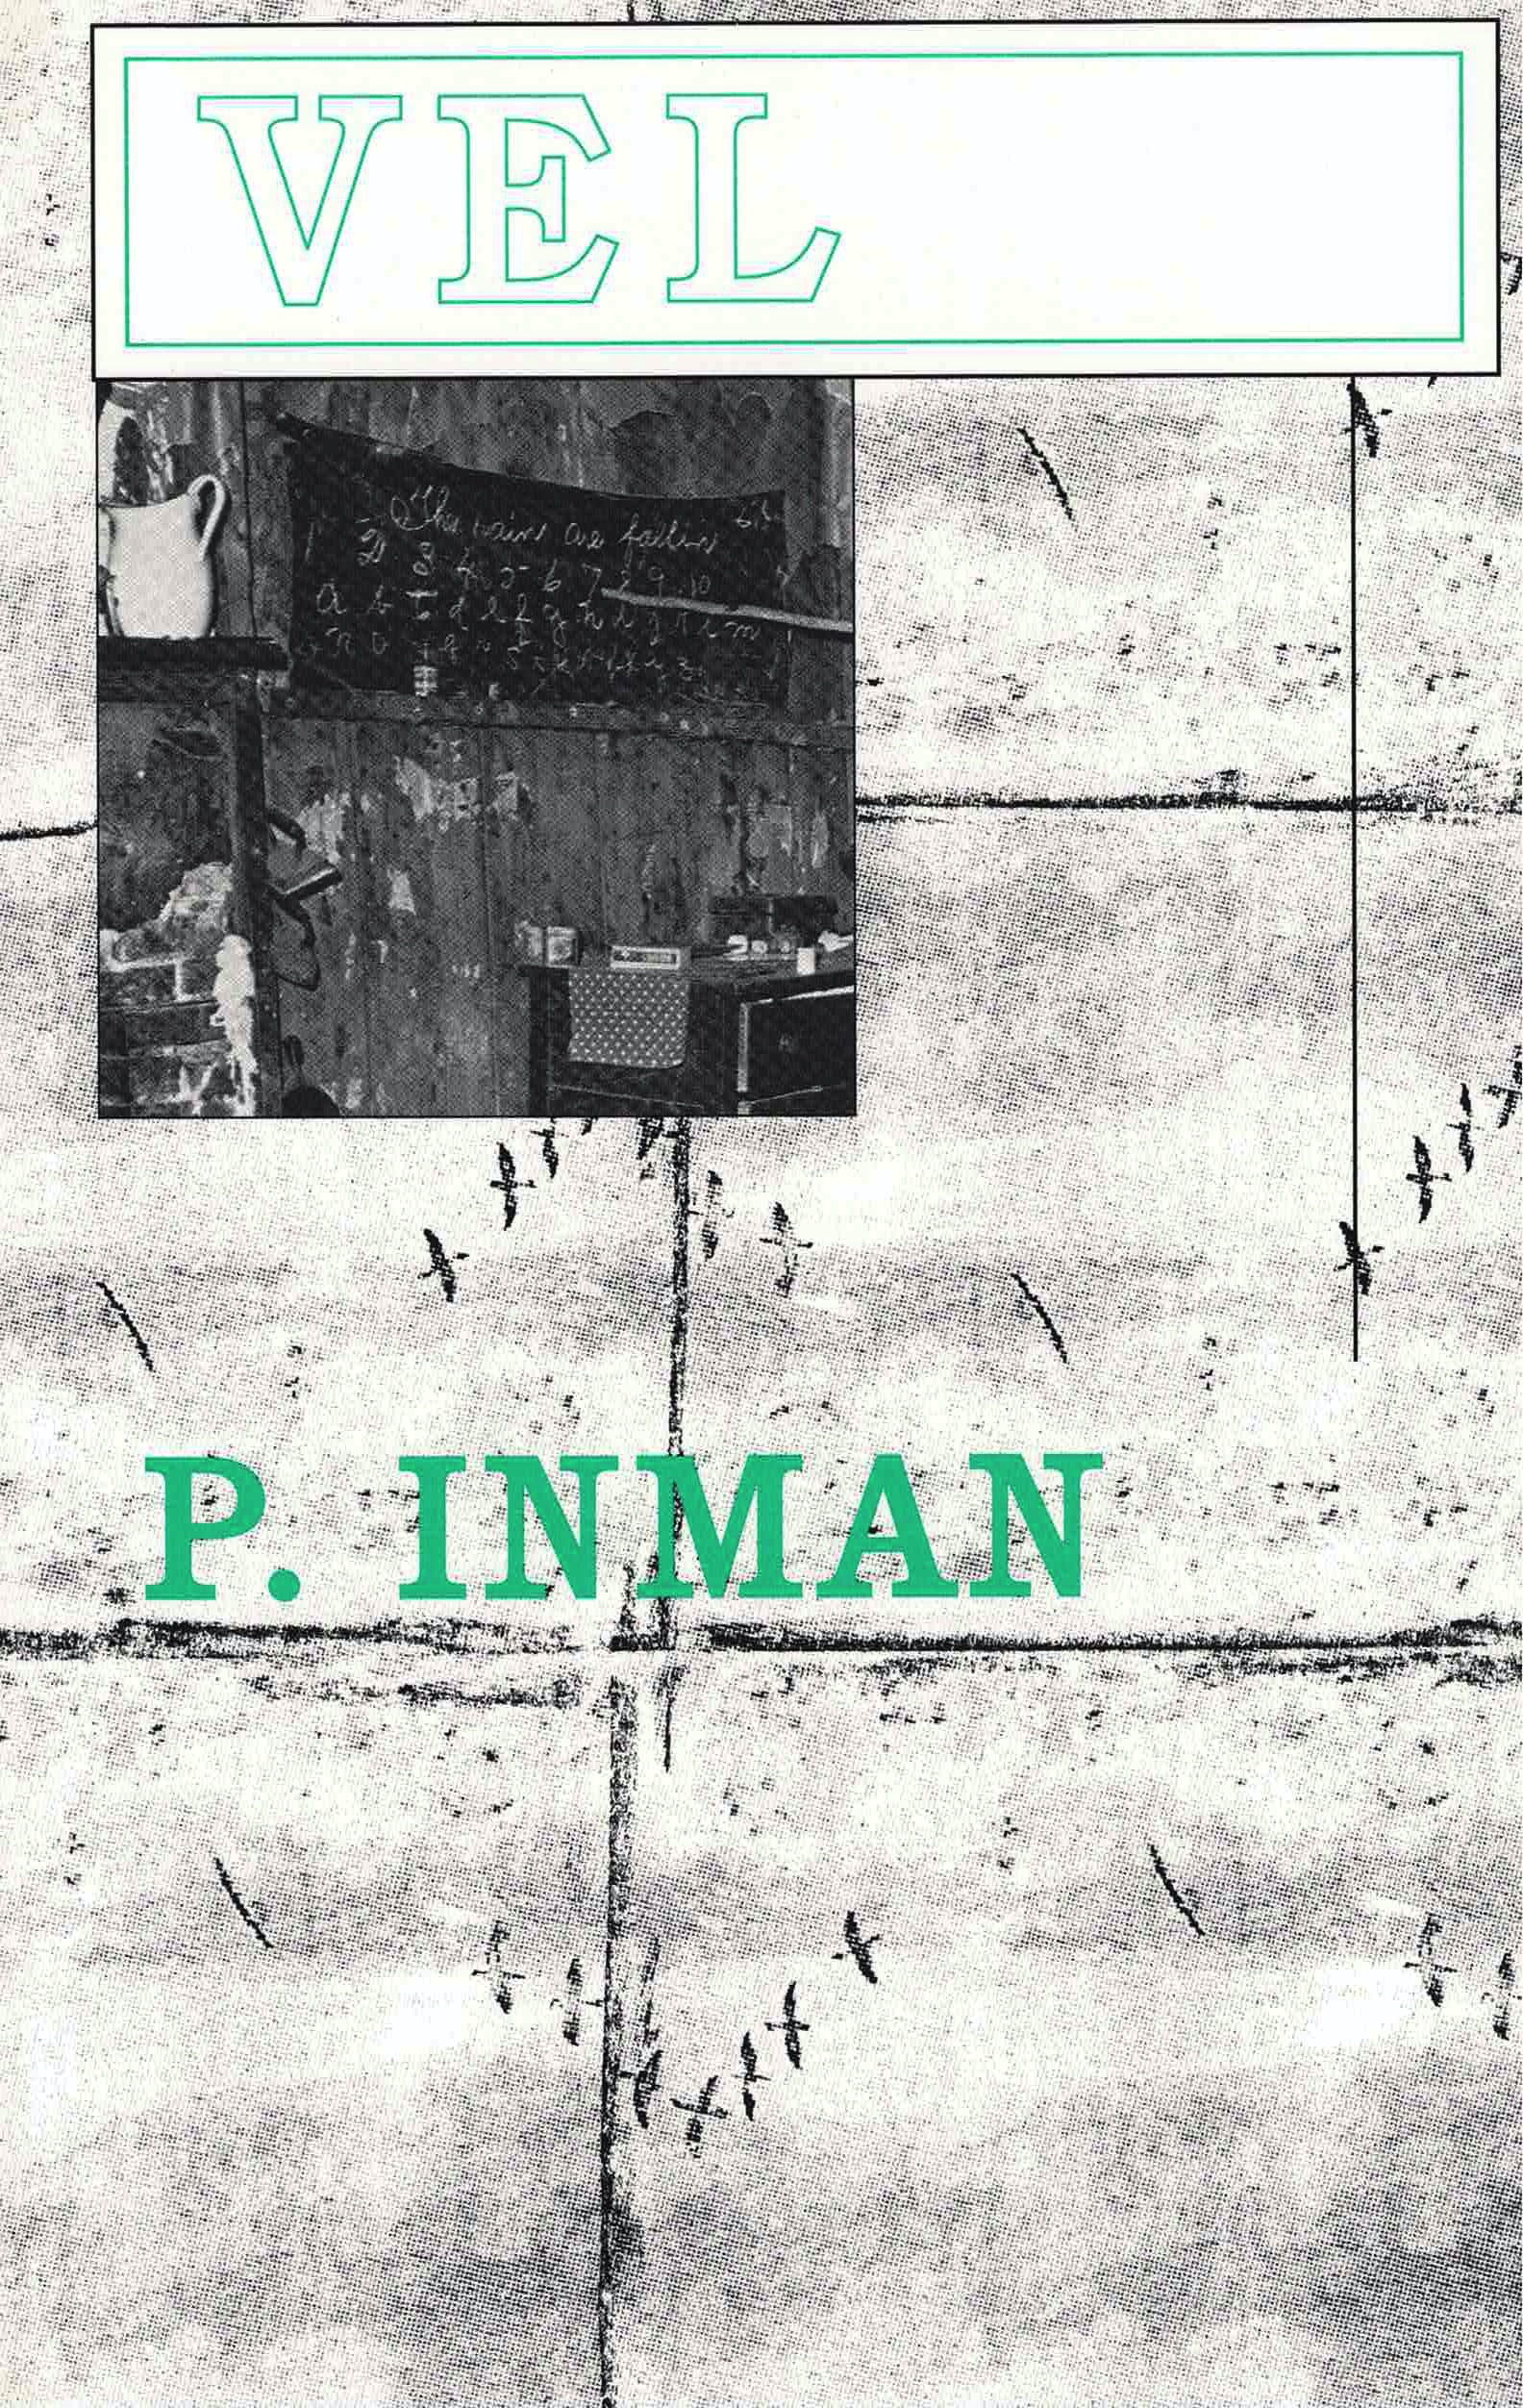 cover of VEL by P. Inman, black line drawing of bird silhouettes and a square b&w image of a wall and white pitcher